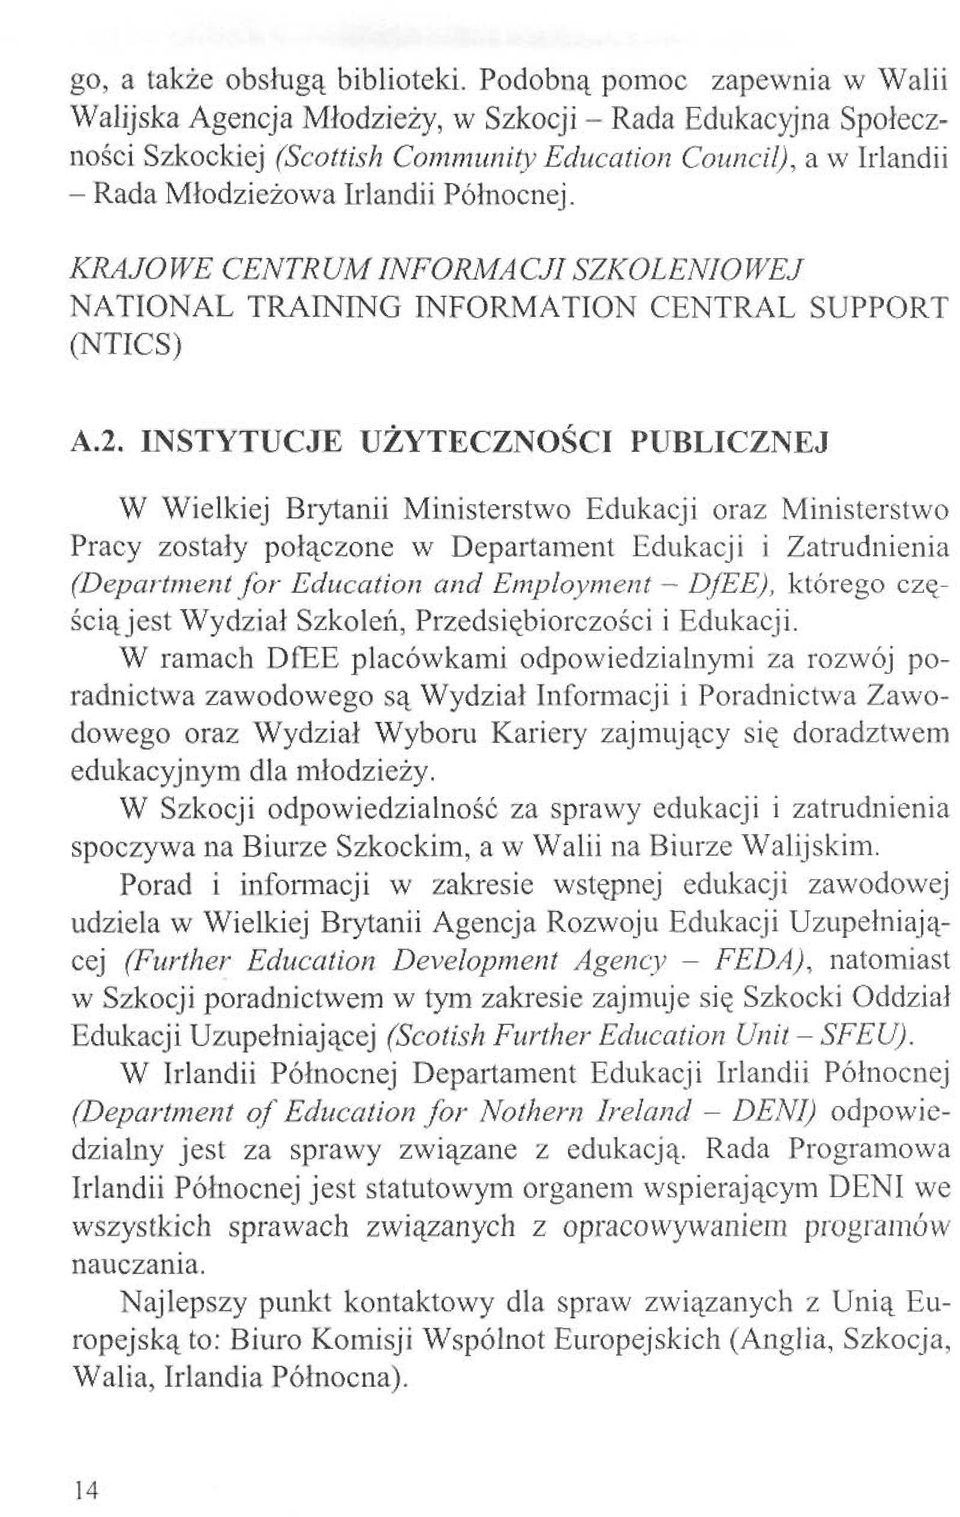 INSTYTUCJE UZYTECZNOSCI PUBLICZNE W Wielkiej Brytanii Ministerstwo Edukacji oraz M Pracy zostaly polaczone w Departament Edukacji i Za (DepartmentJor Education and Employment - DjEE),k sciajest